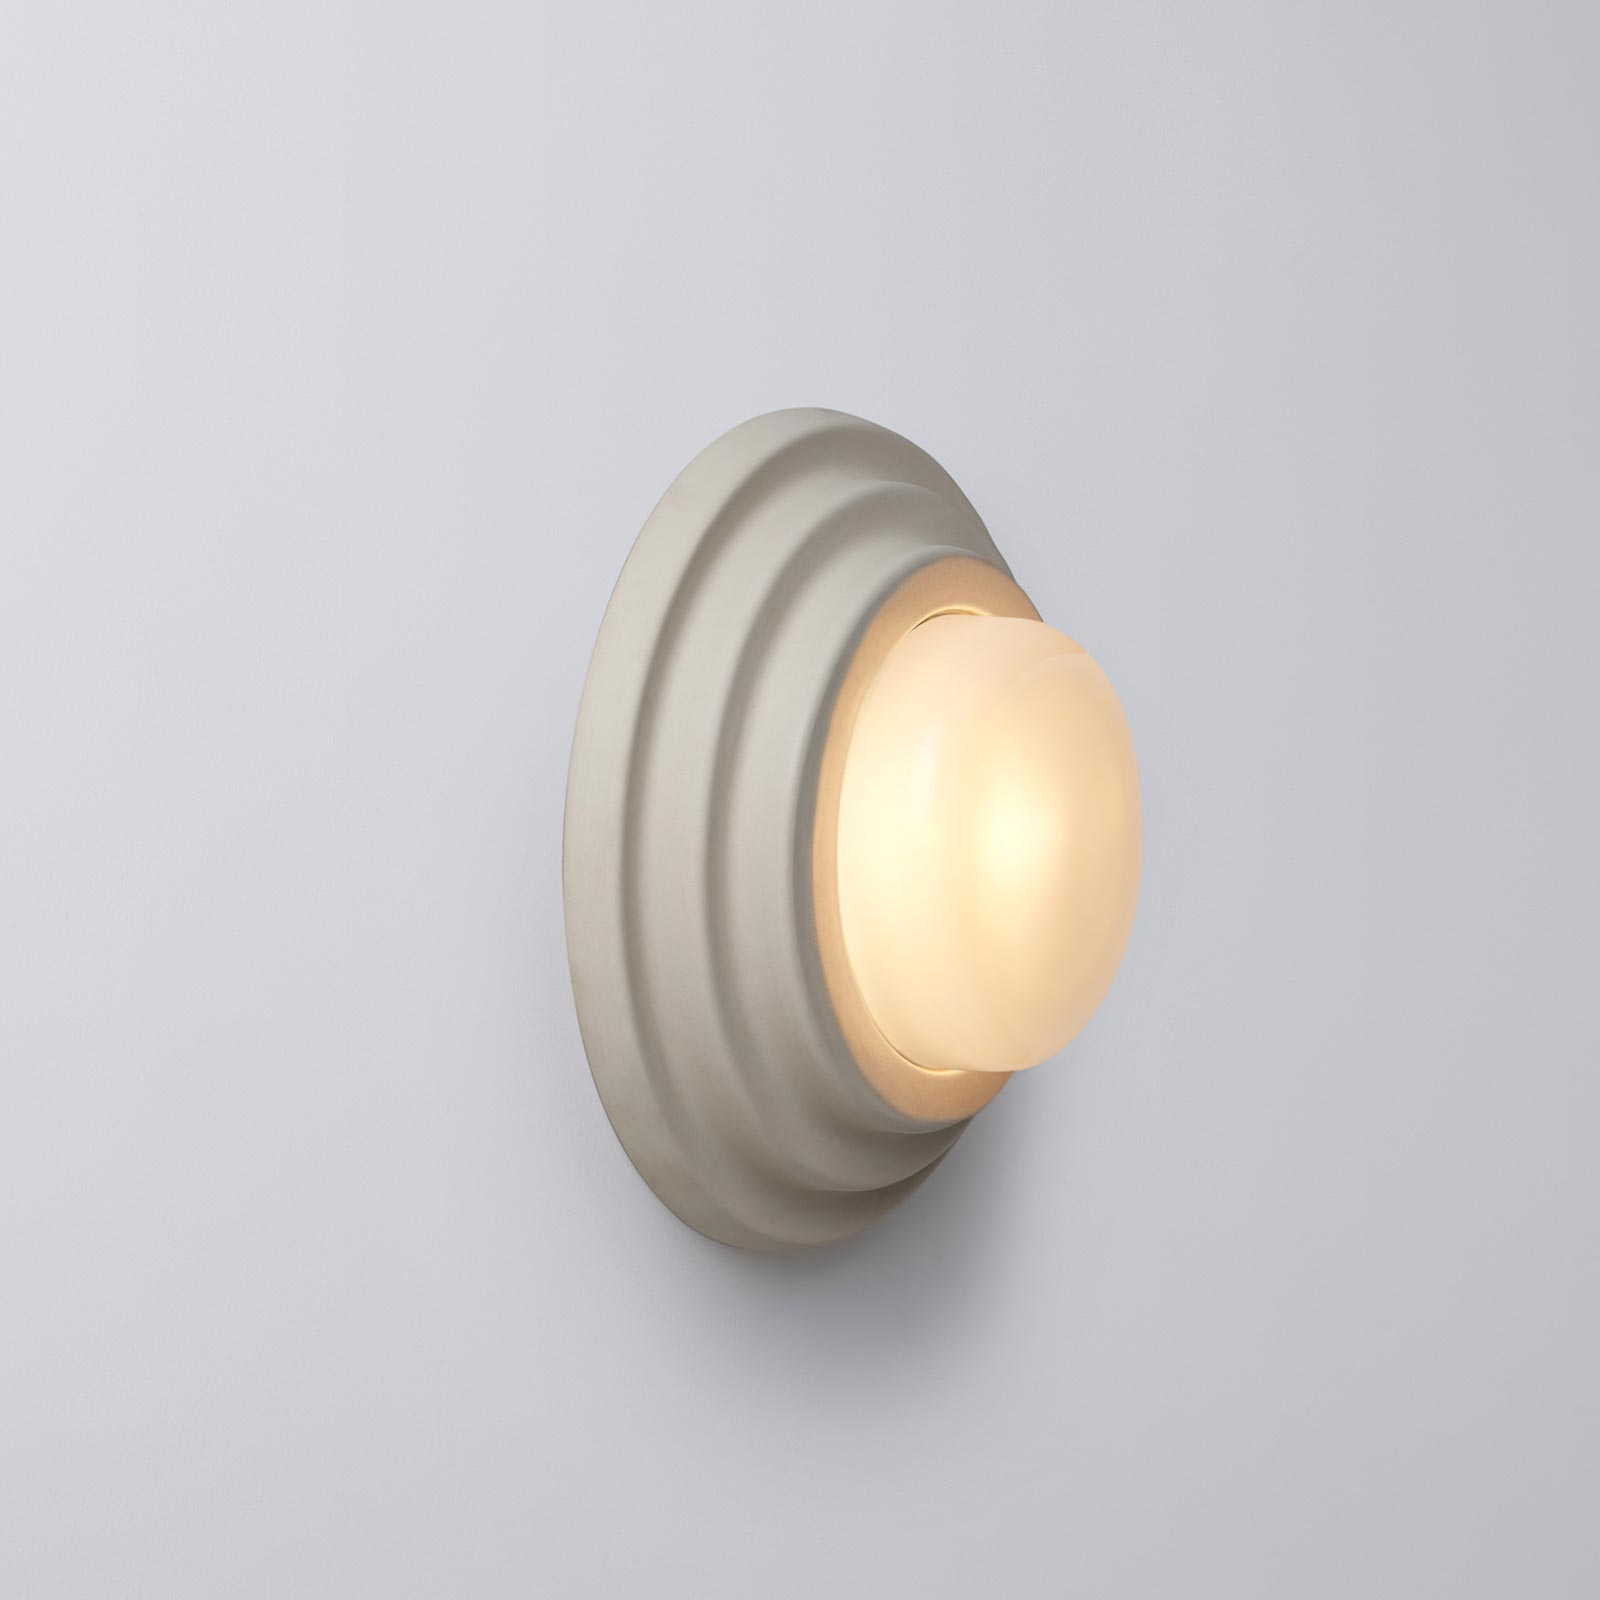 Honey Wall Sconce By Coco Flip Hero 4